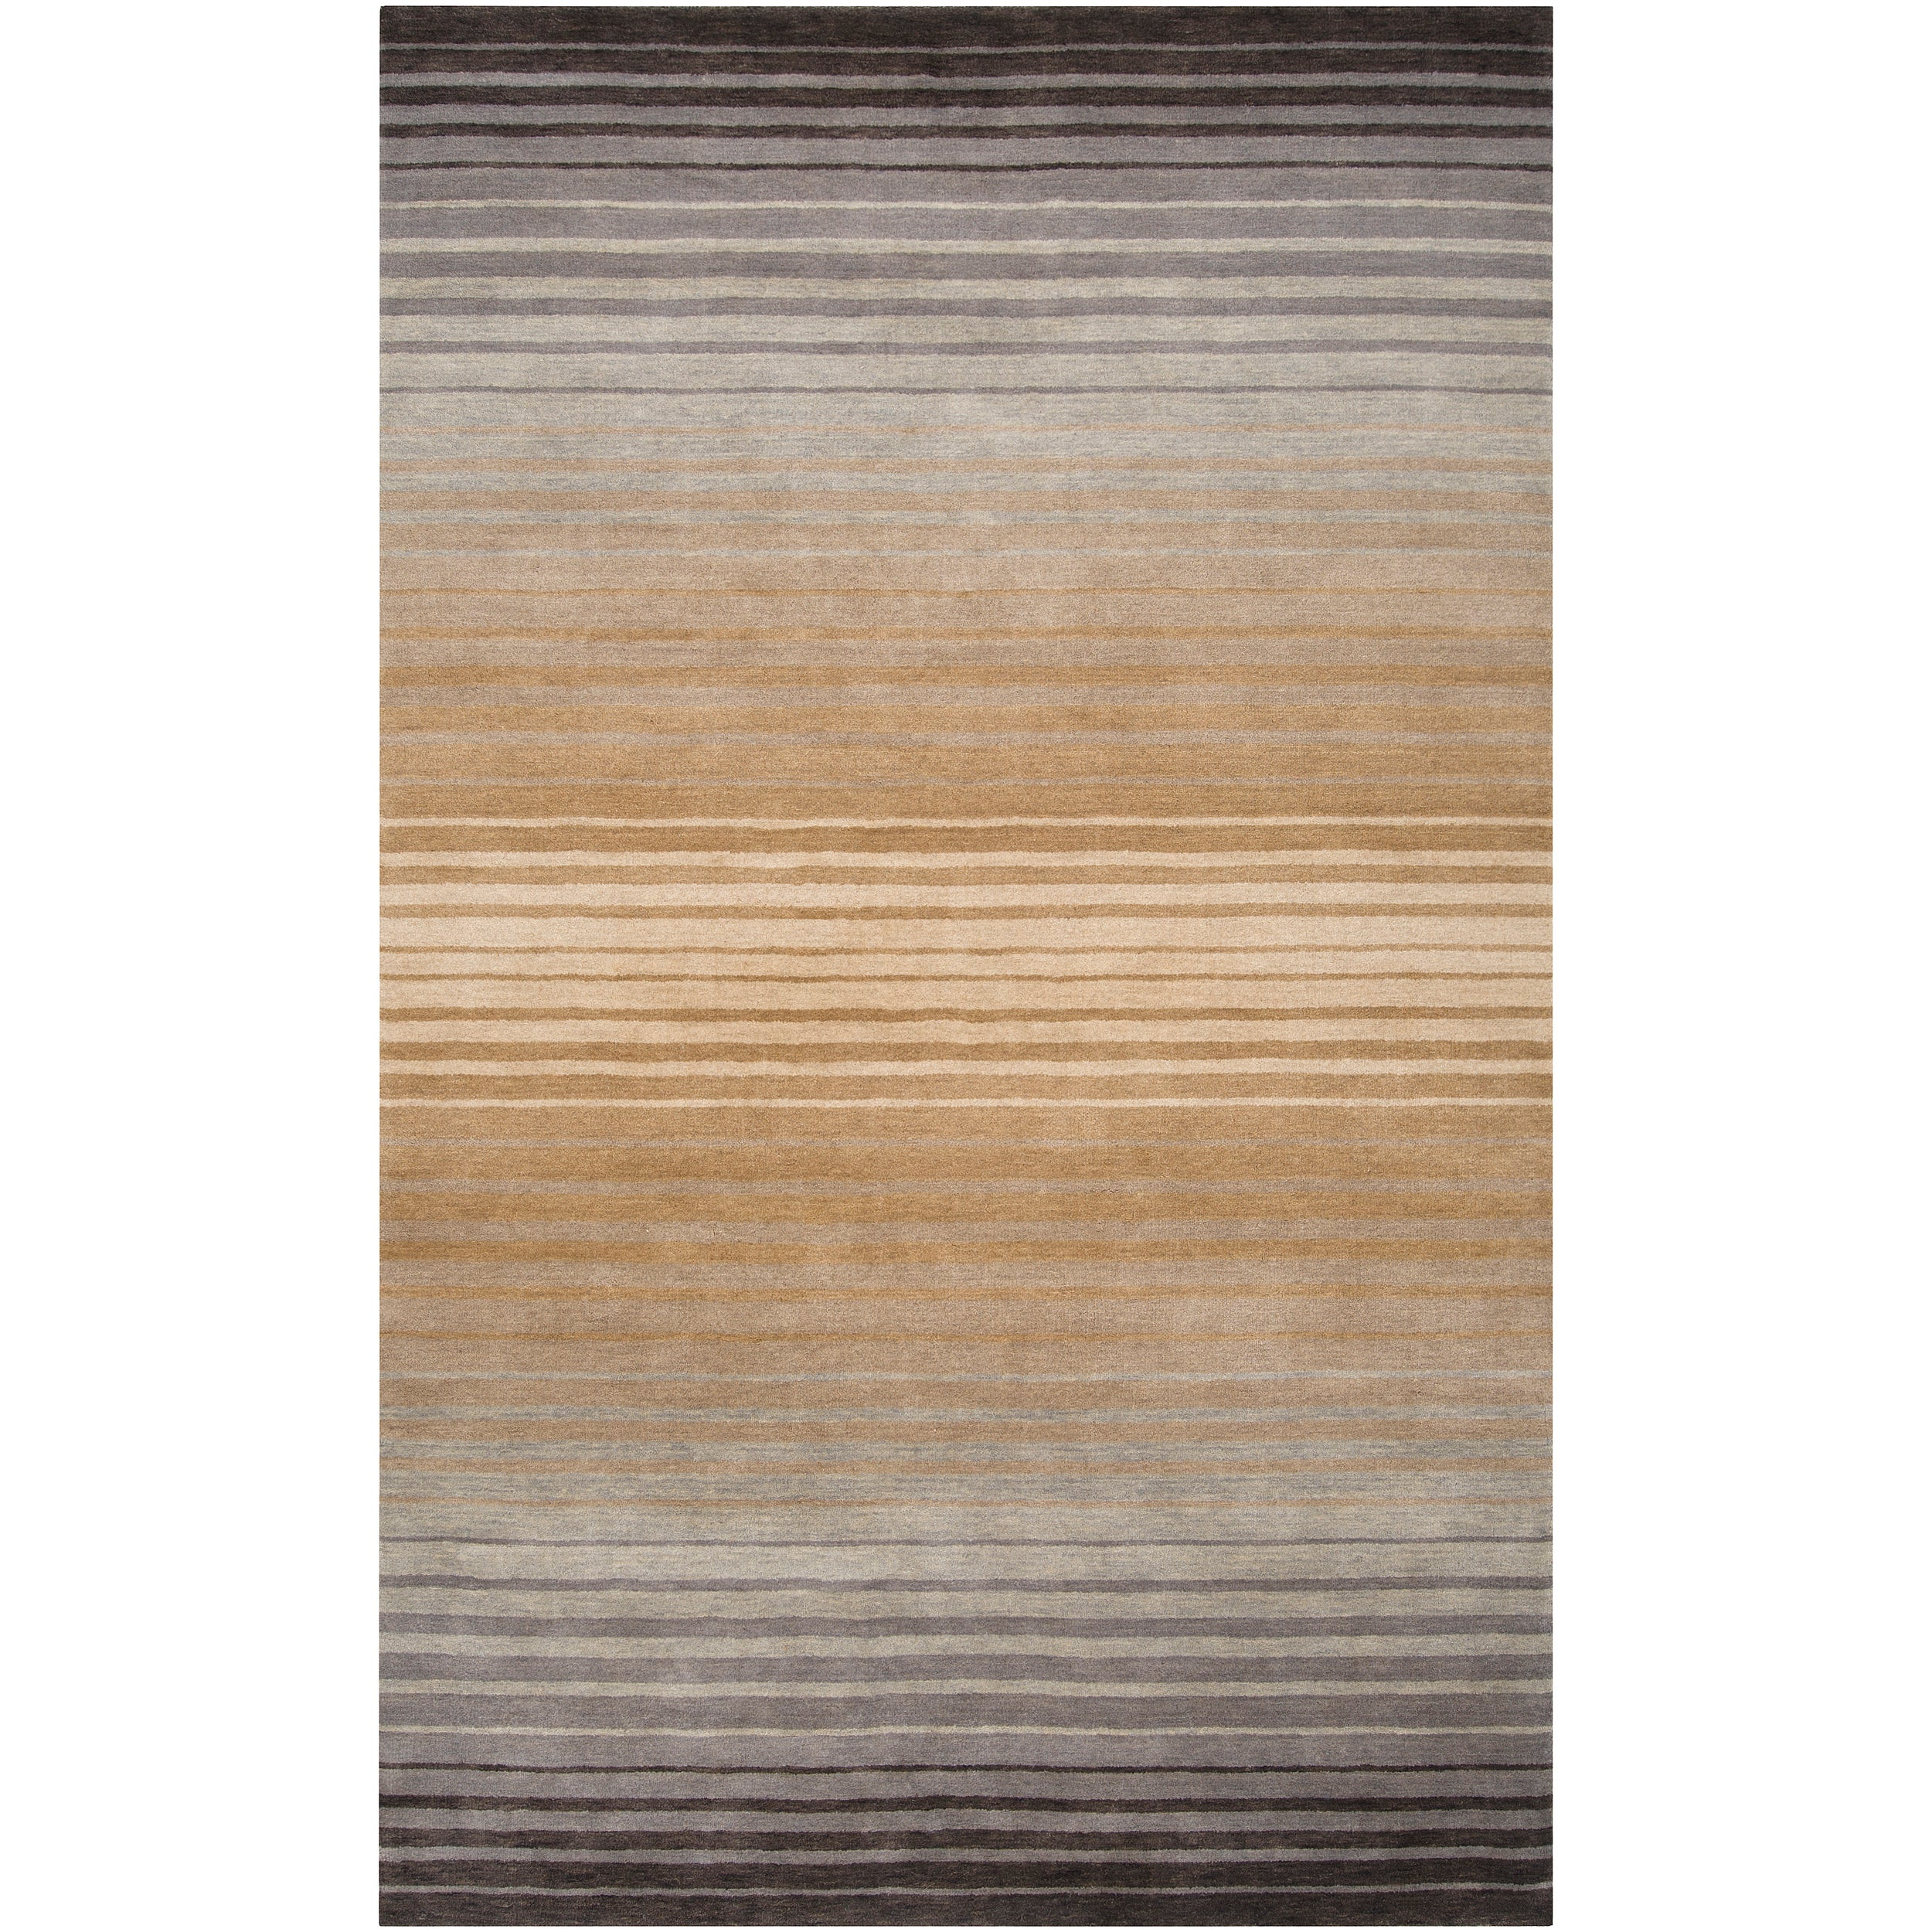 Hand-crafted Brown/Grey Ombre Casual Attica Wool Area Rug (8' x 11')